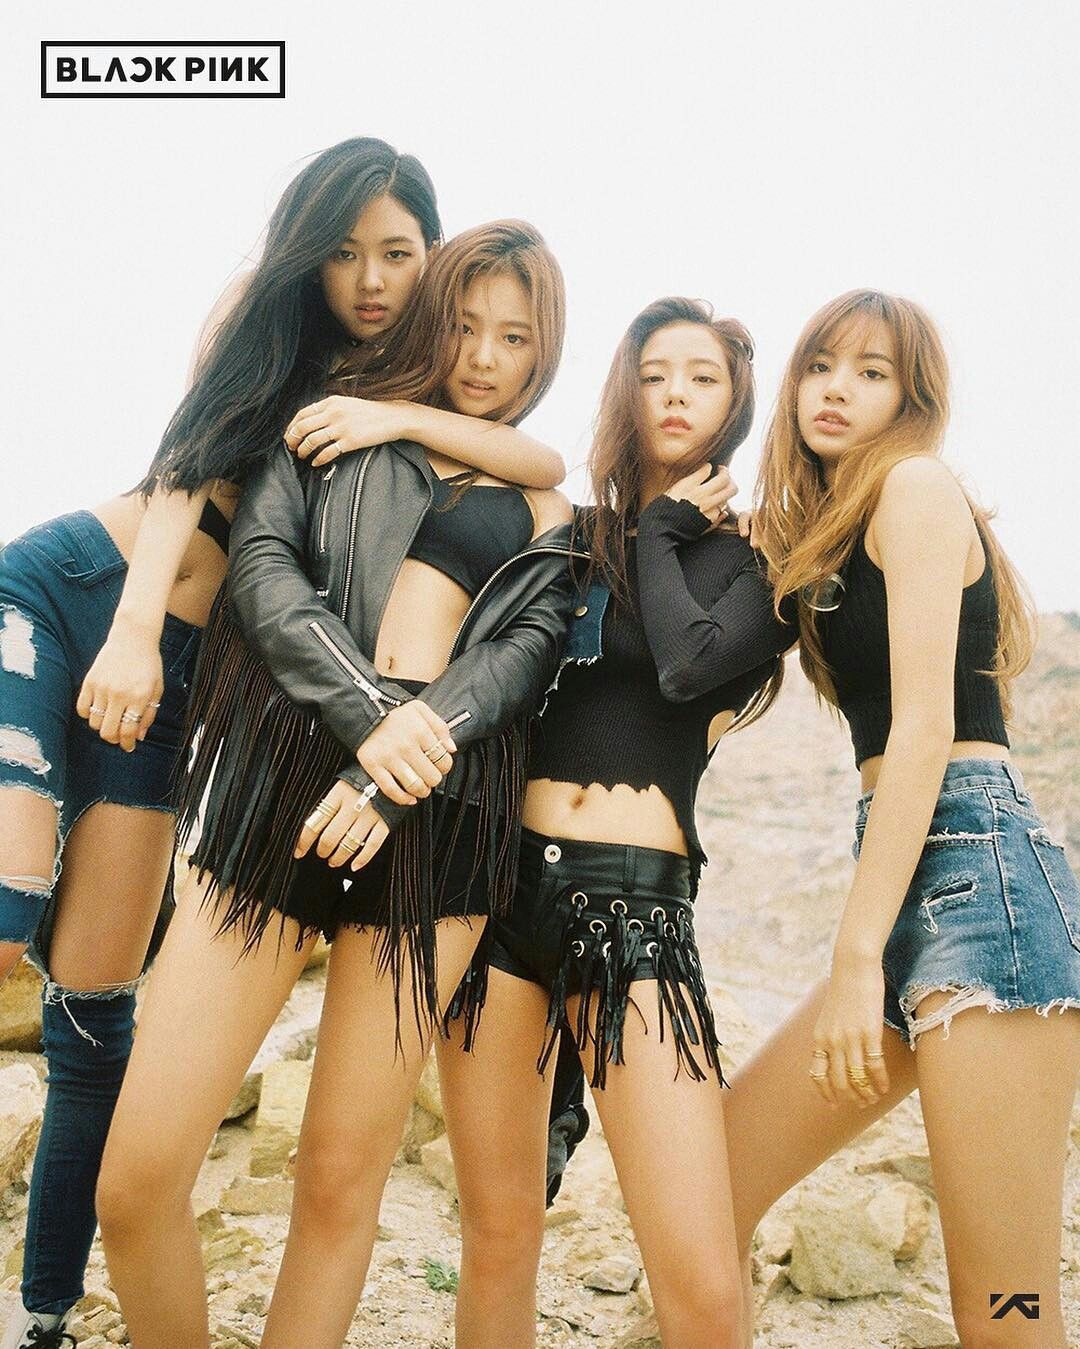 BLACKPINK Profile: First Girl Group to Debut Under YG